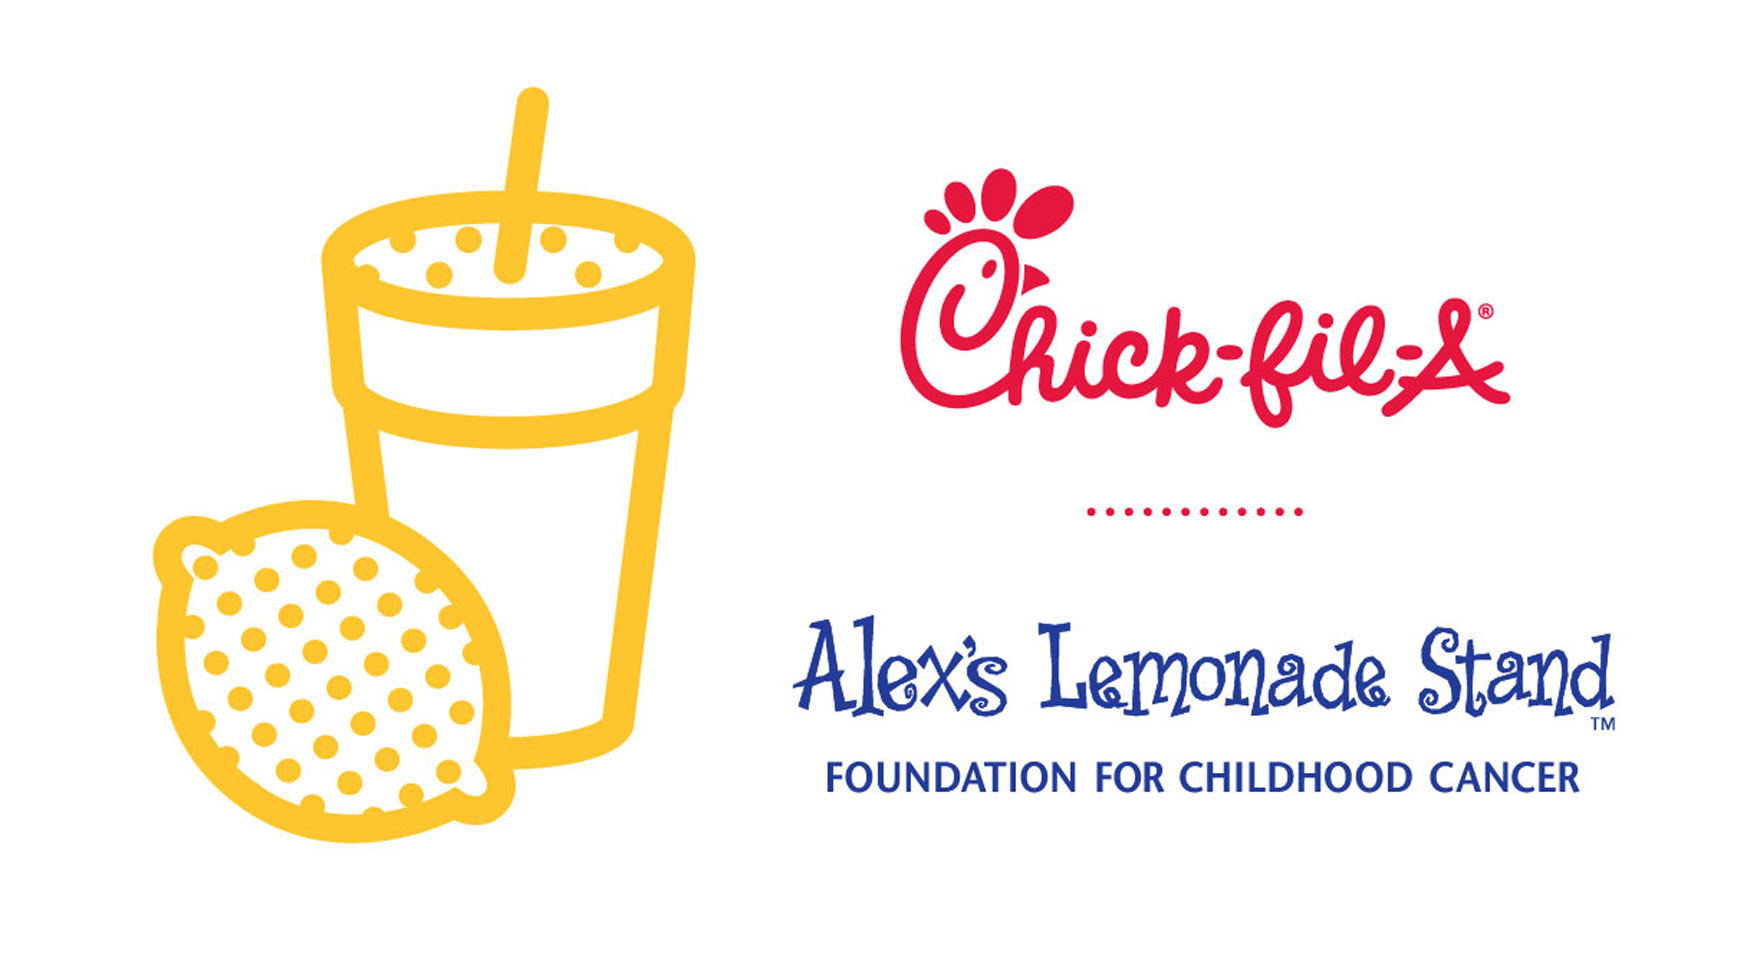 Alex's Lemonade Stand - Foundation for Childhood Cancer